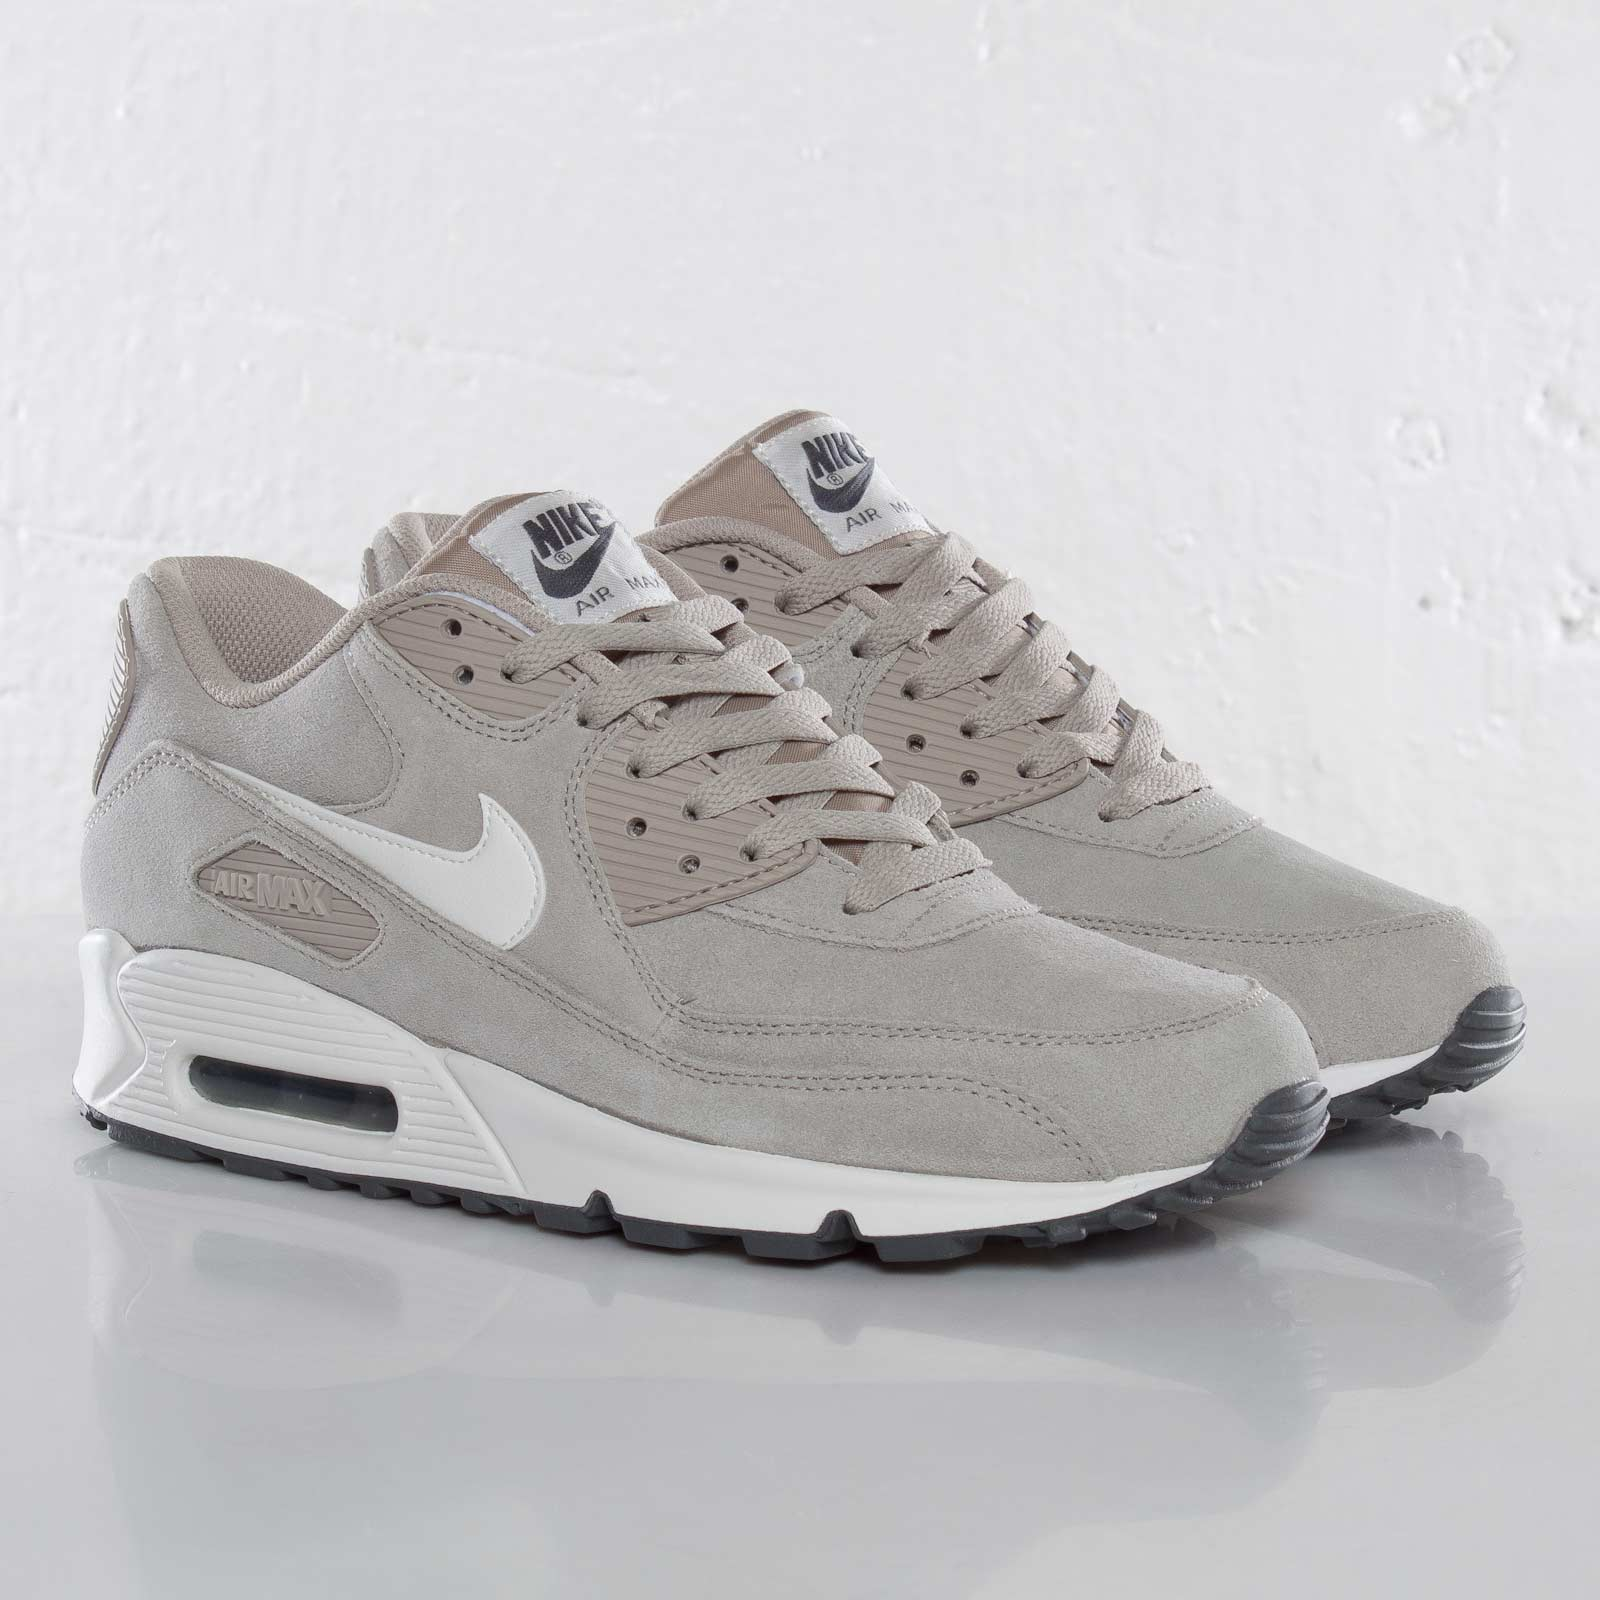 Nike Air Max 90 Essential 537384 099 Sneakersnstuff